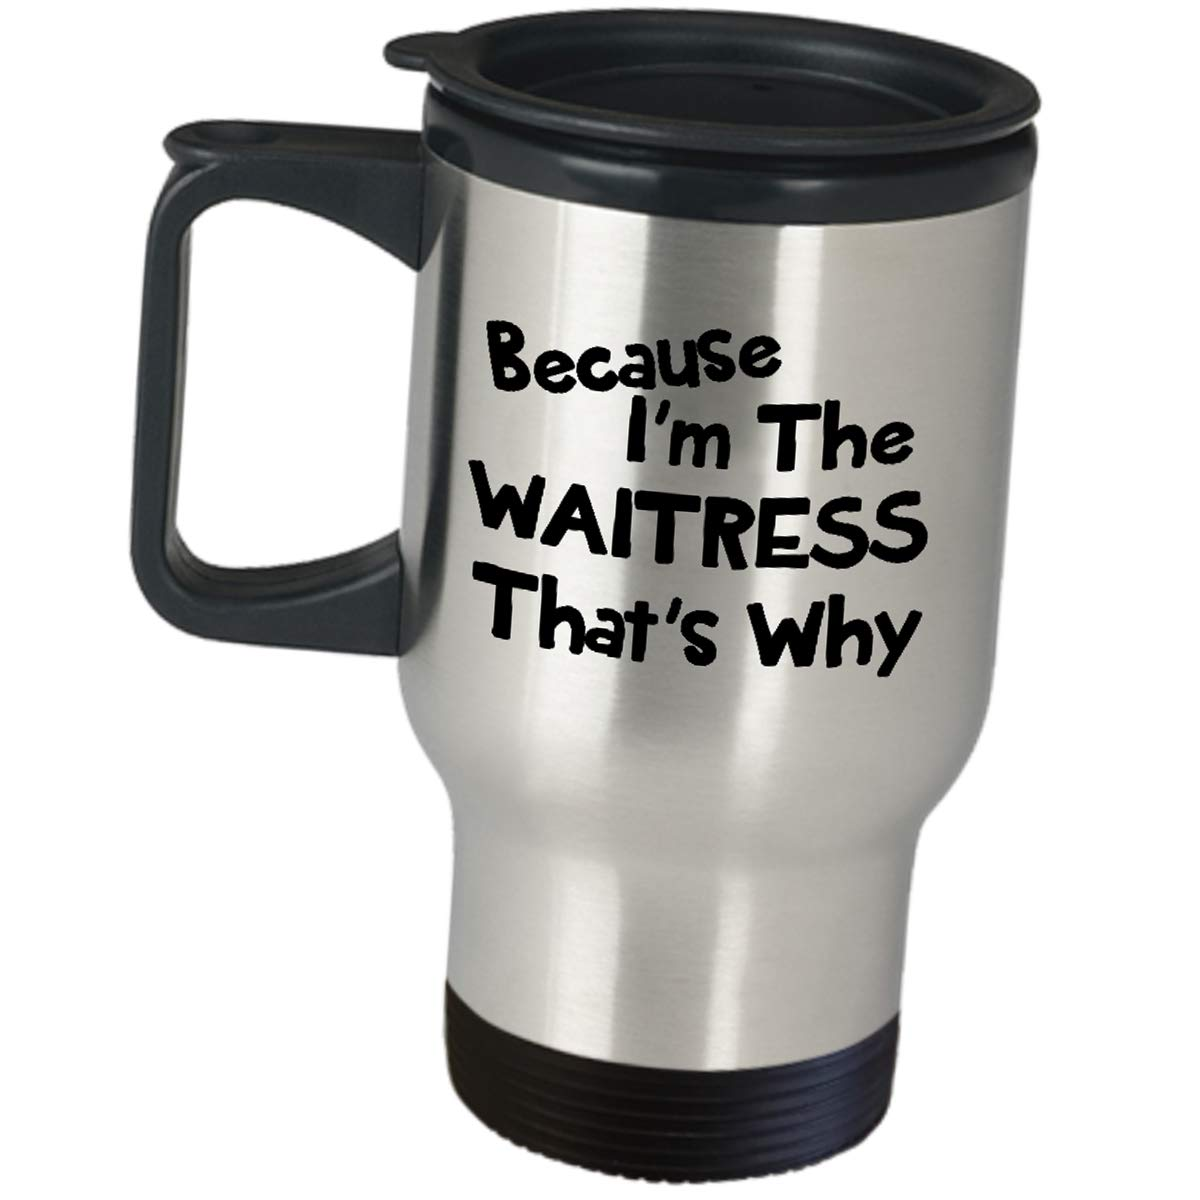 Because Im The Waitress Thats Why Funny Cute Gag Gifts - Appreciation For Women Server Travel Mug Stainless Steel Insulated Coffee Tumbler Restaurant Cafeteria Food Order Taker Fun Job Pride Gift